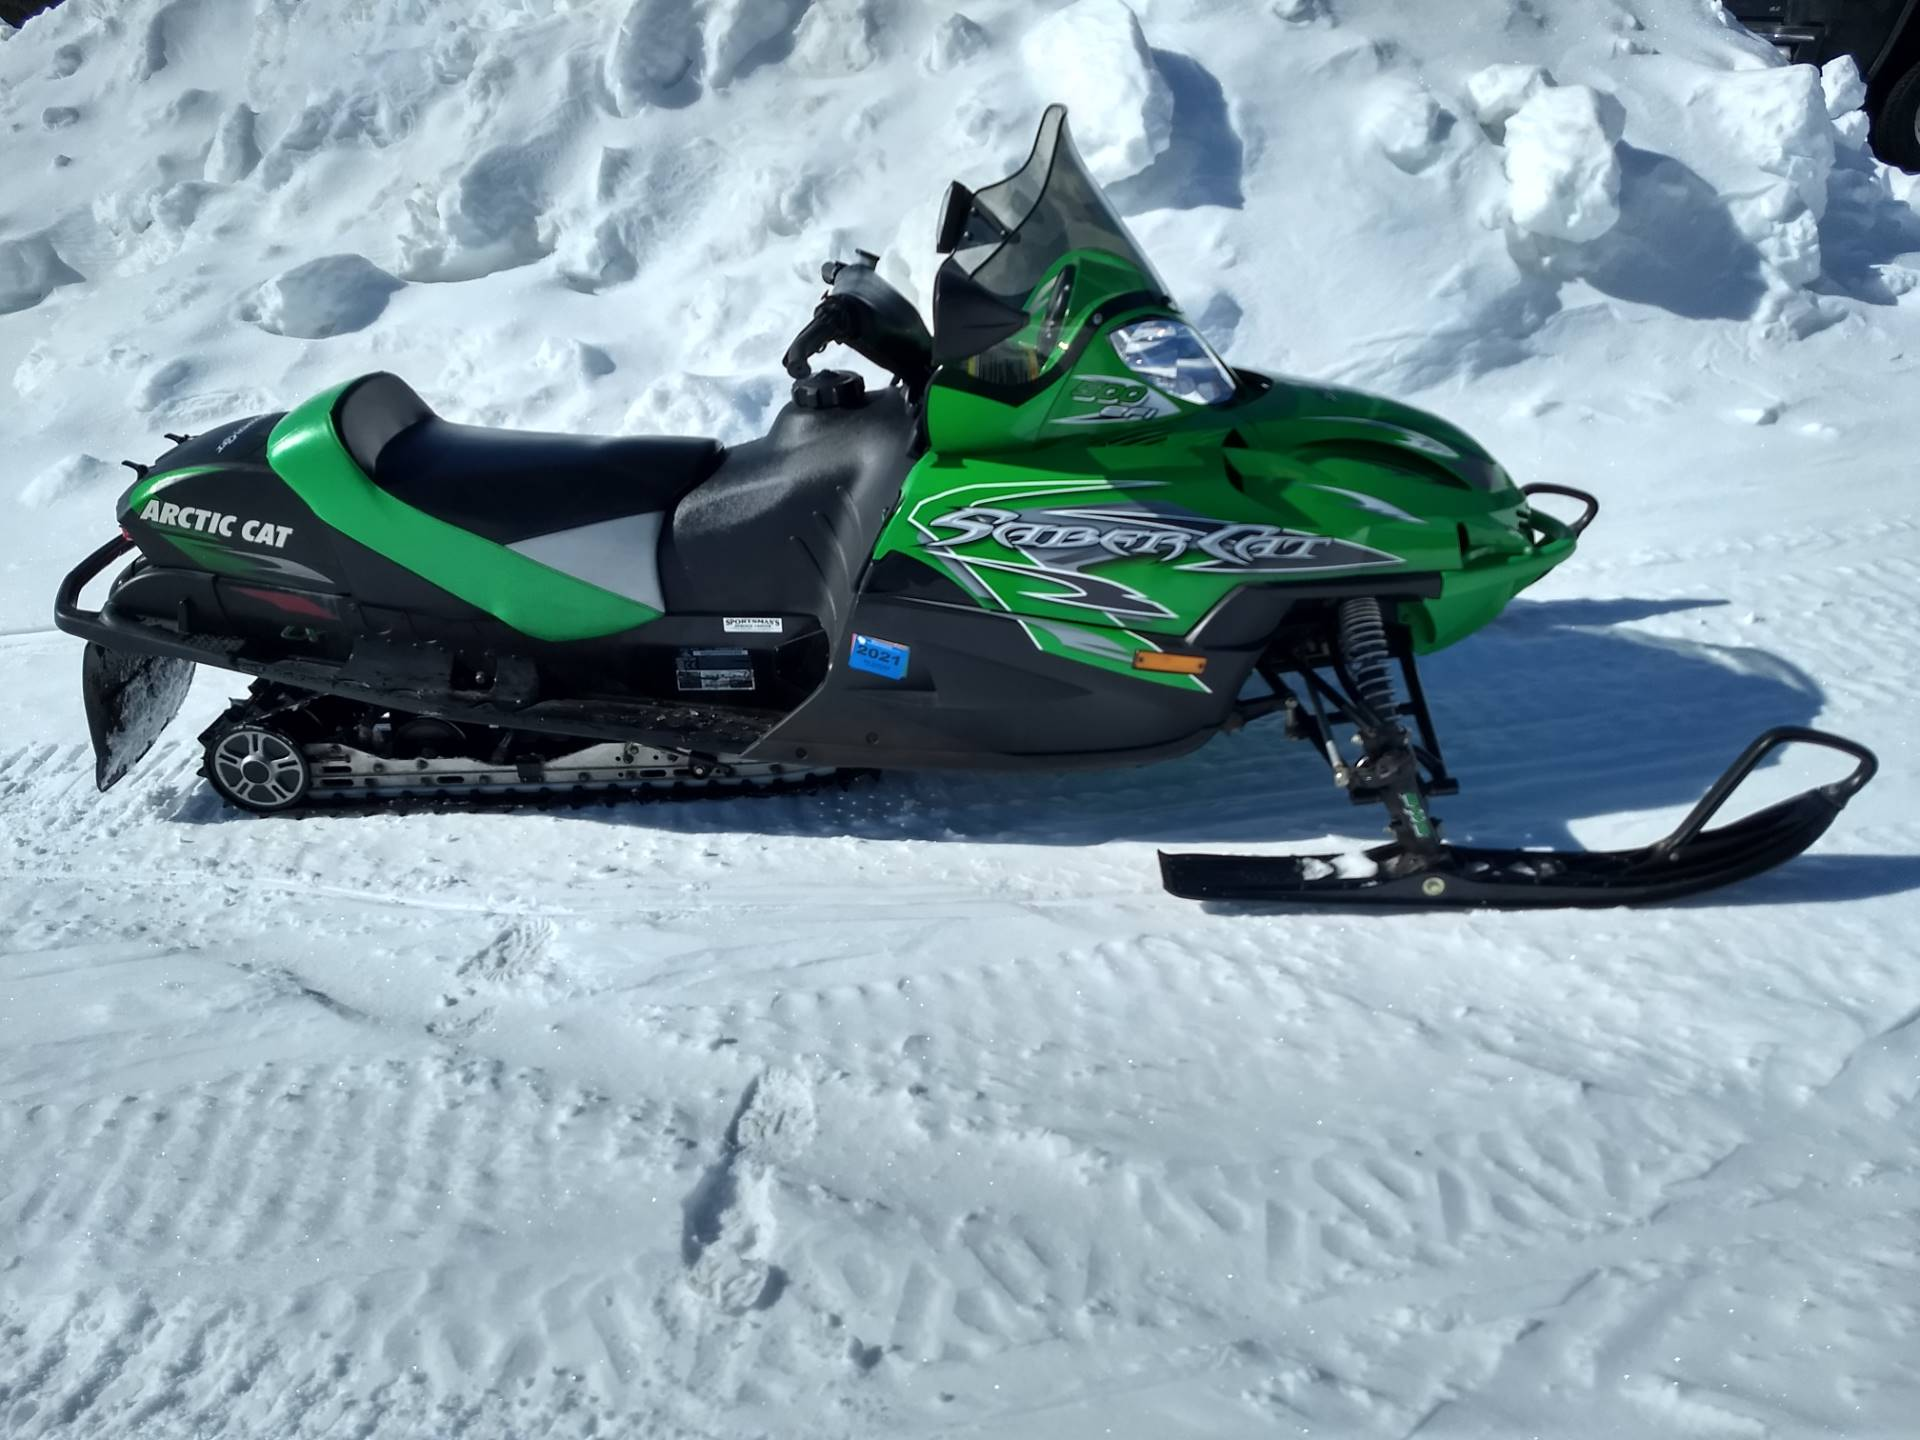 2006 Arctic Cat Trail Performance Sabercat 500 EFI LX in Three Lakes, Wisconsin - Photo 1